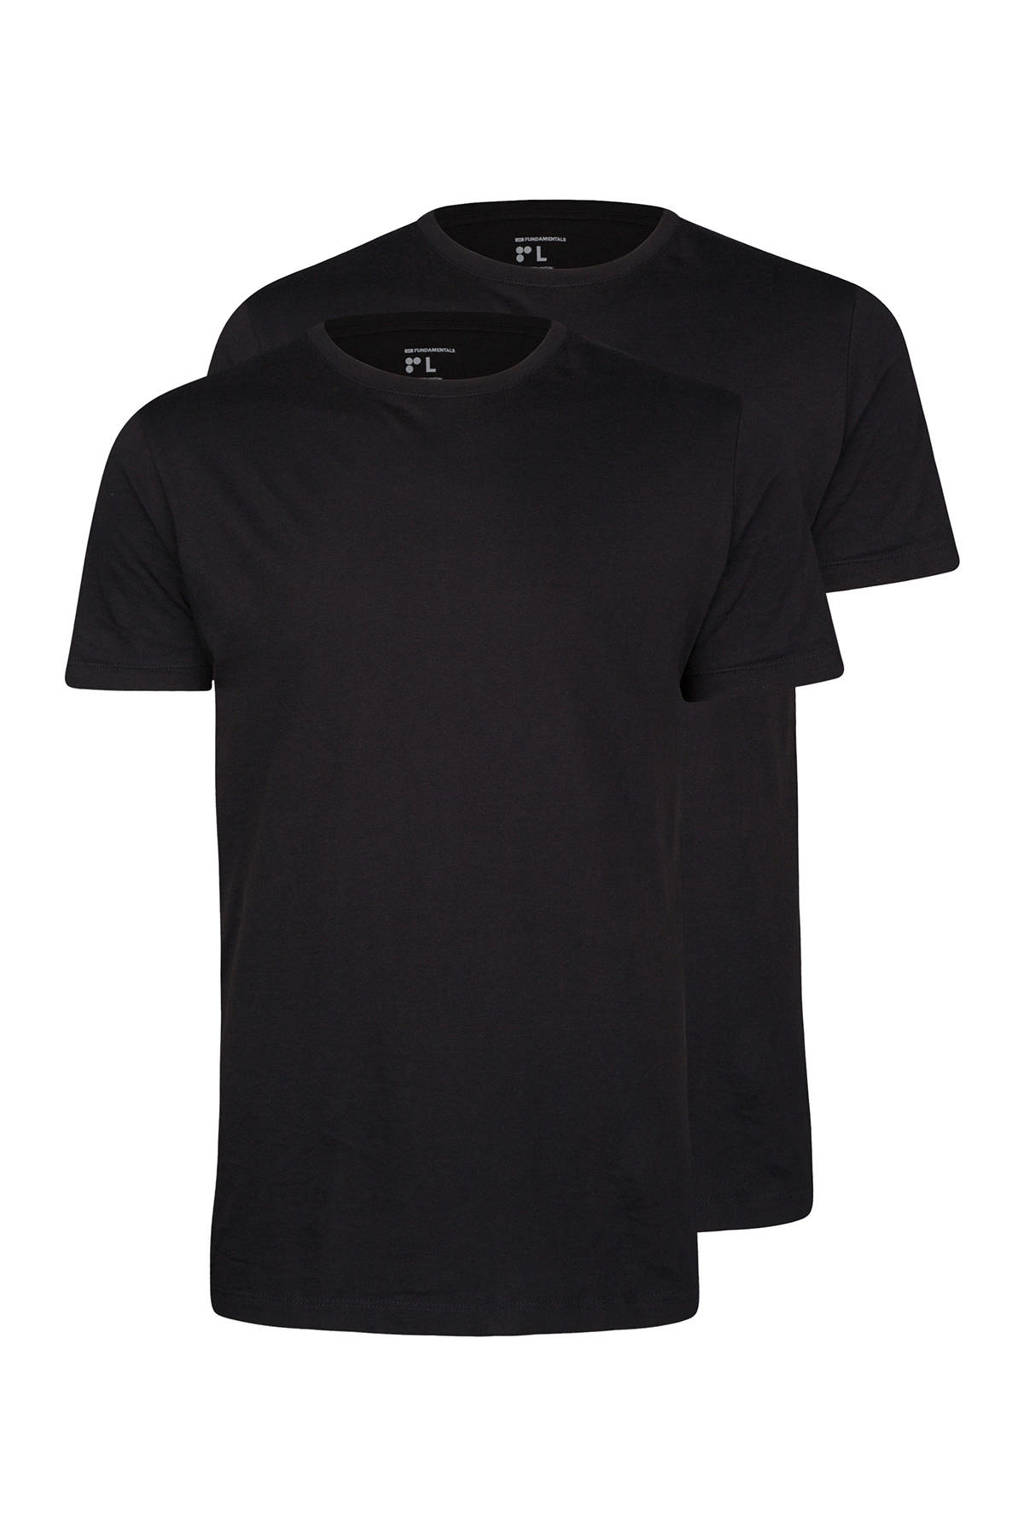 WE Fashion T-shirt (set van 2), Zwart